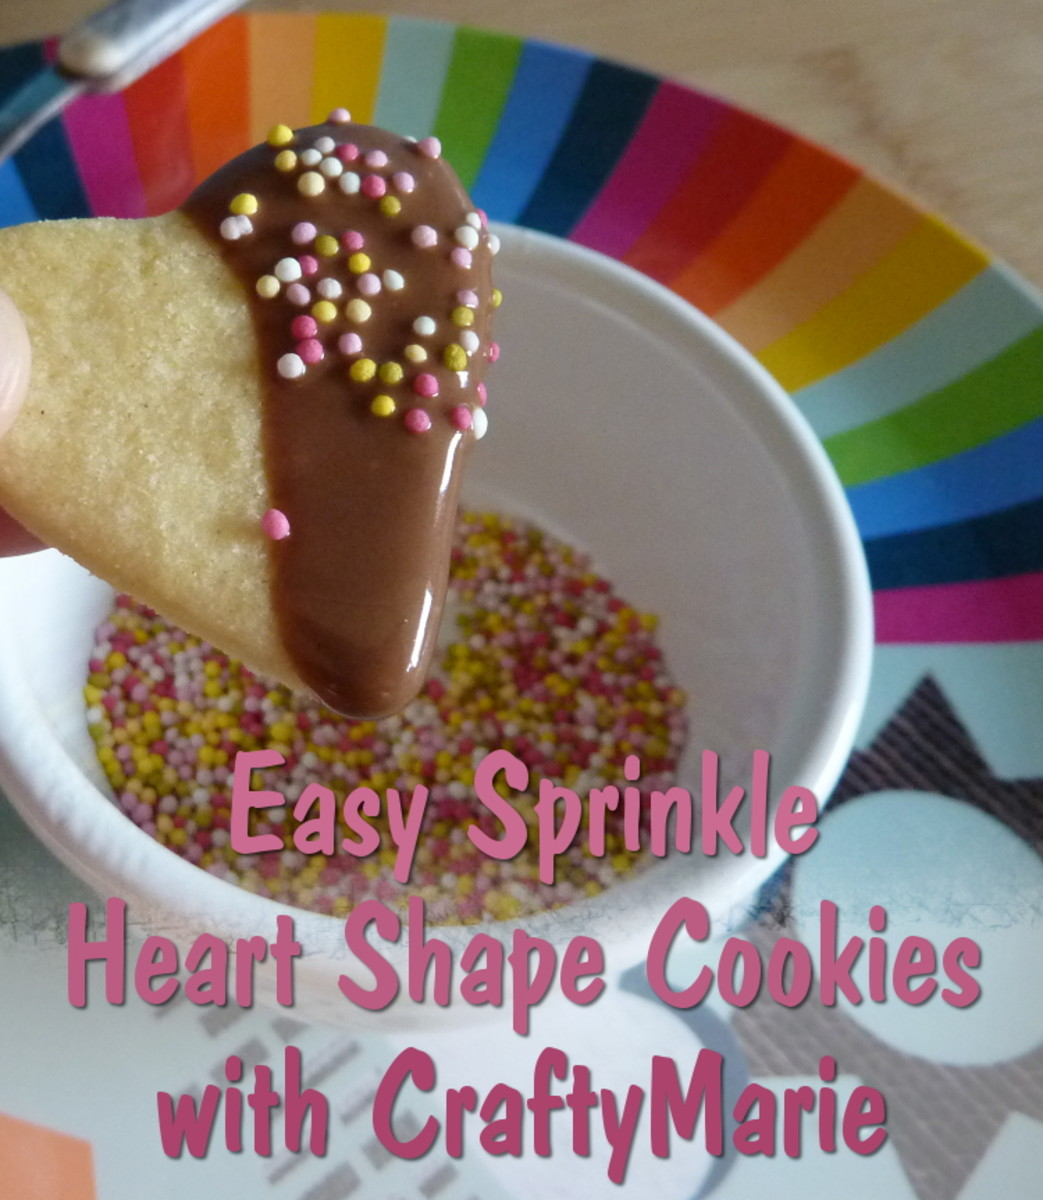 Easy to make sugar heart cookies dipped in chocolate with sprinkles